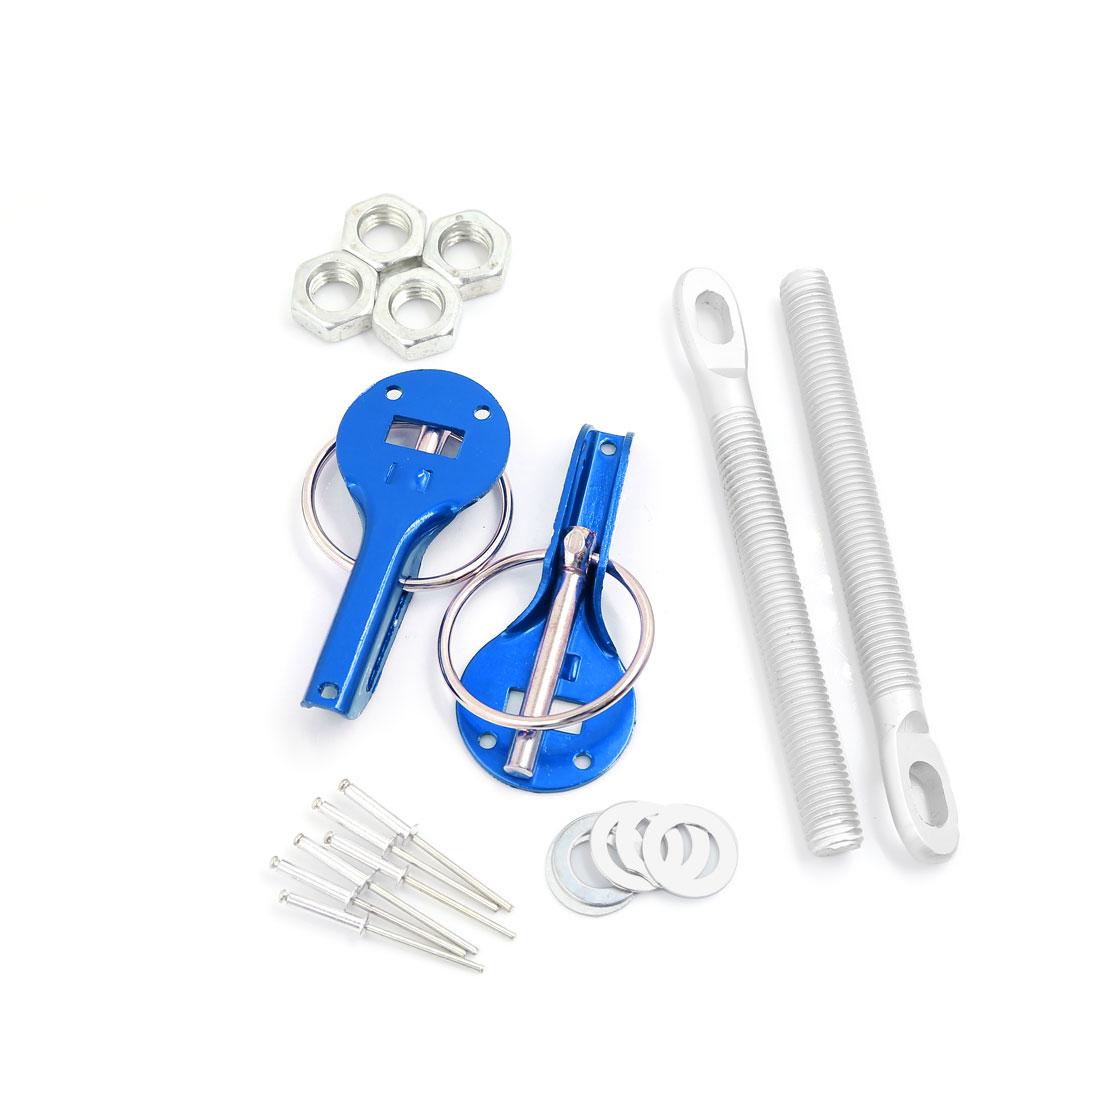 Universal Blue Aluminum Alloy Bonnet Hood Pin Lock Locking Kit for Racing Car